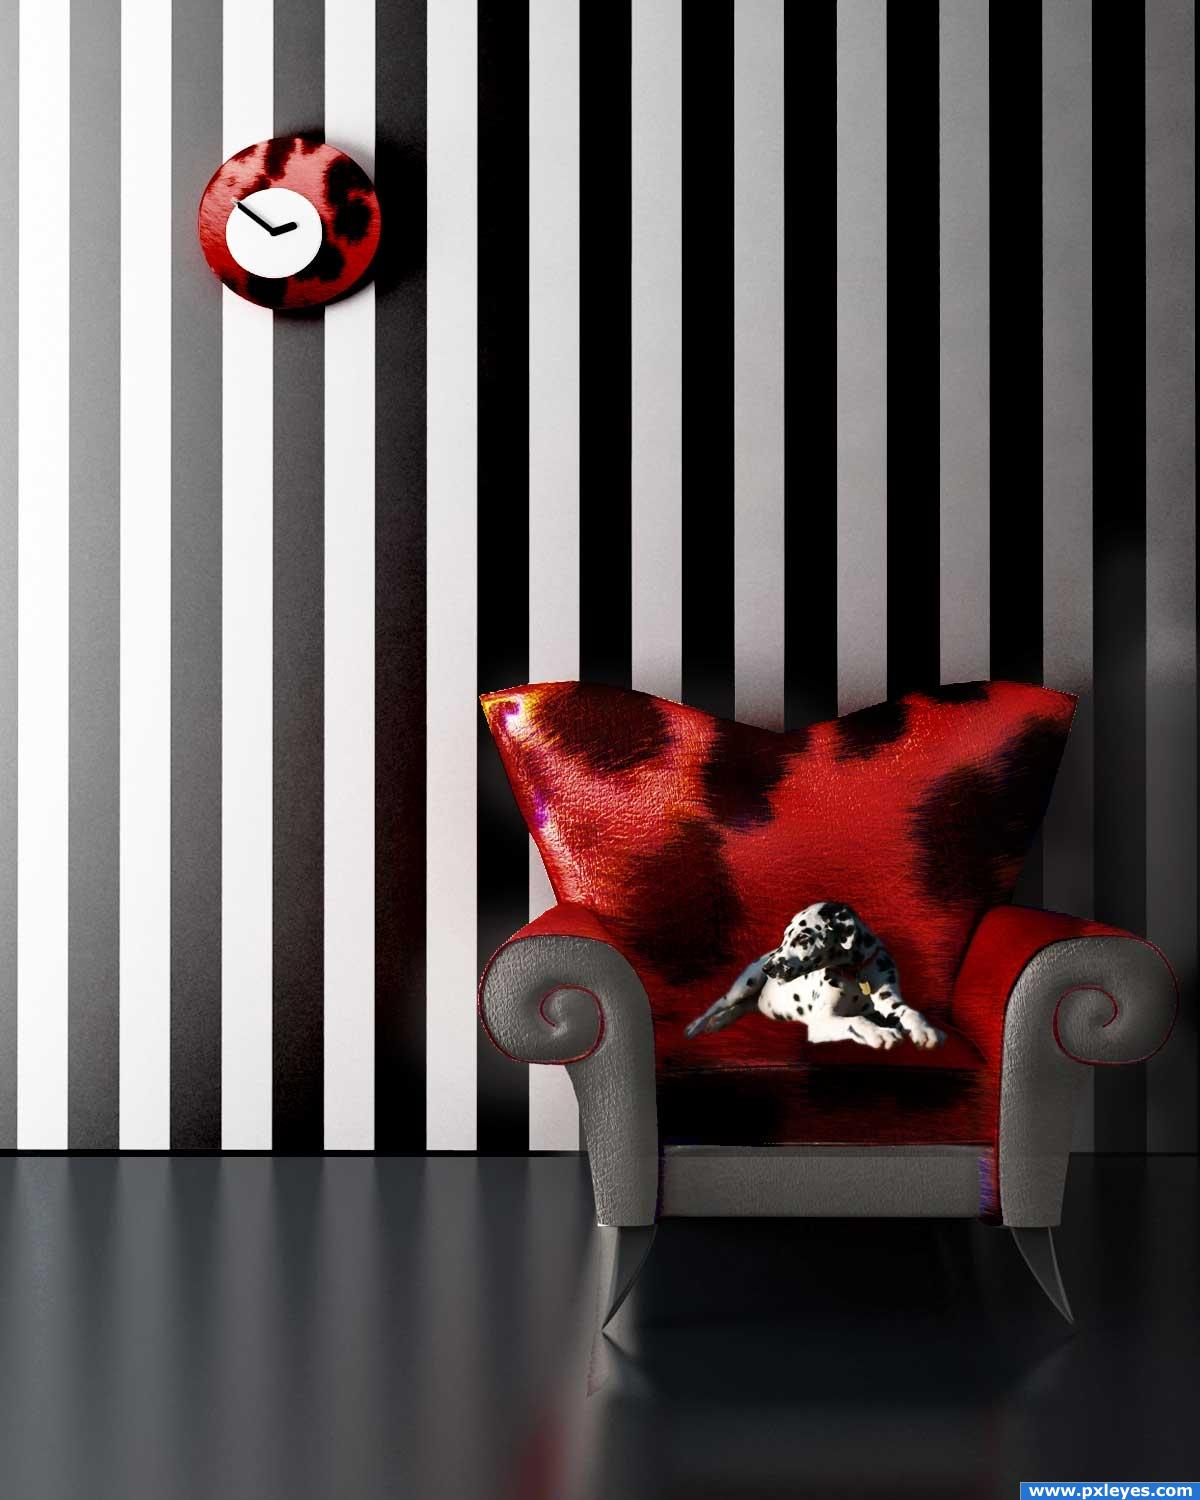 Sofa Render Photoshop Contest 8138 Pictures Page 6  : sofa20render4aa0a0f74a3a4hires from www.pxleyes.com size 1200 x 1500 jpeg 133kB